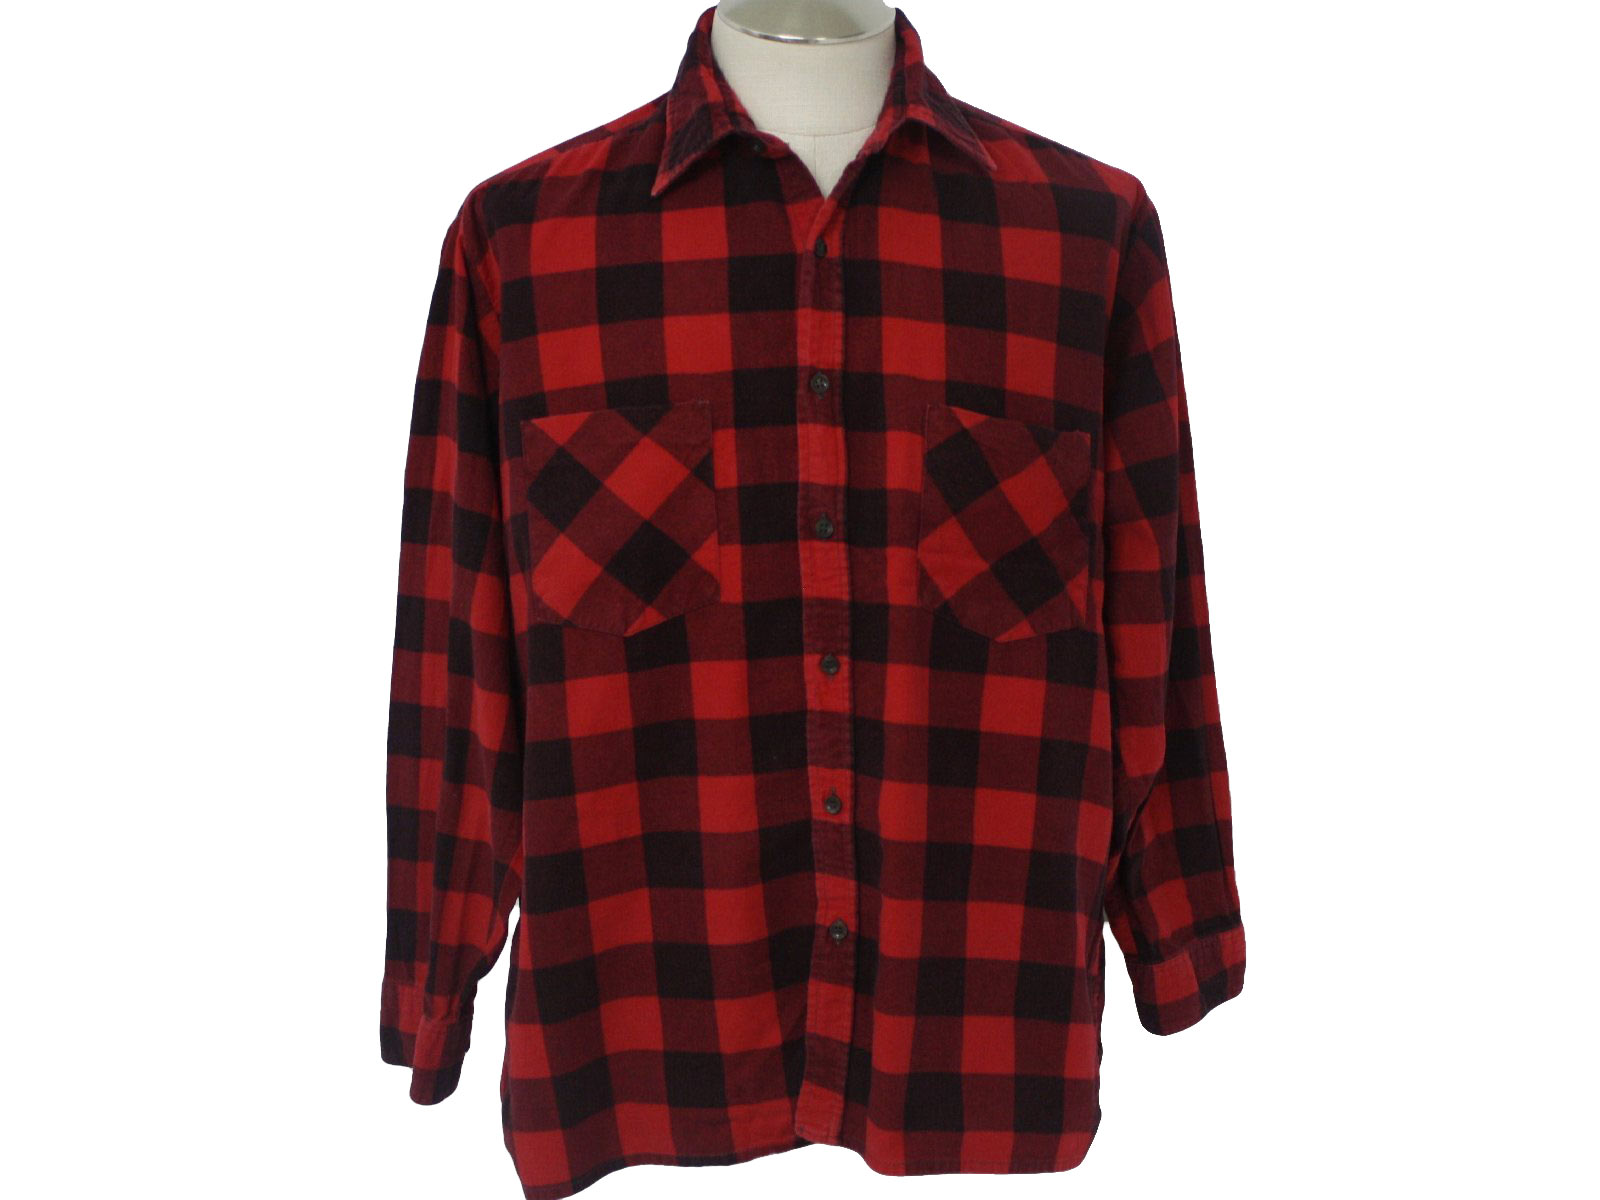 Choose from a wide assortment of denim shirts, flannel shirts and plaid shirts for a look that empowers style and fashion. Hues of red, orange and cream brighten up your jeans and make you stand out in a .